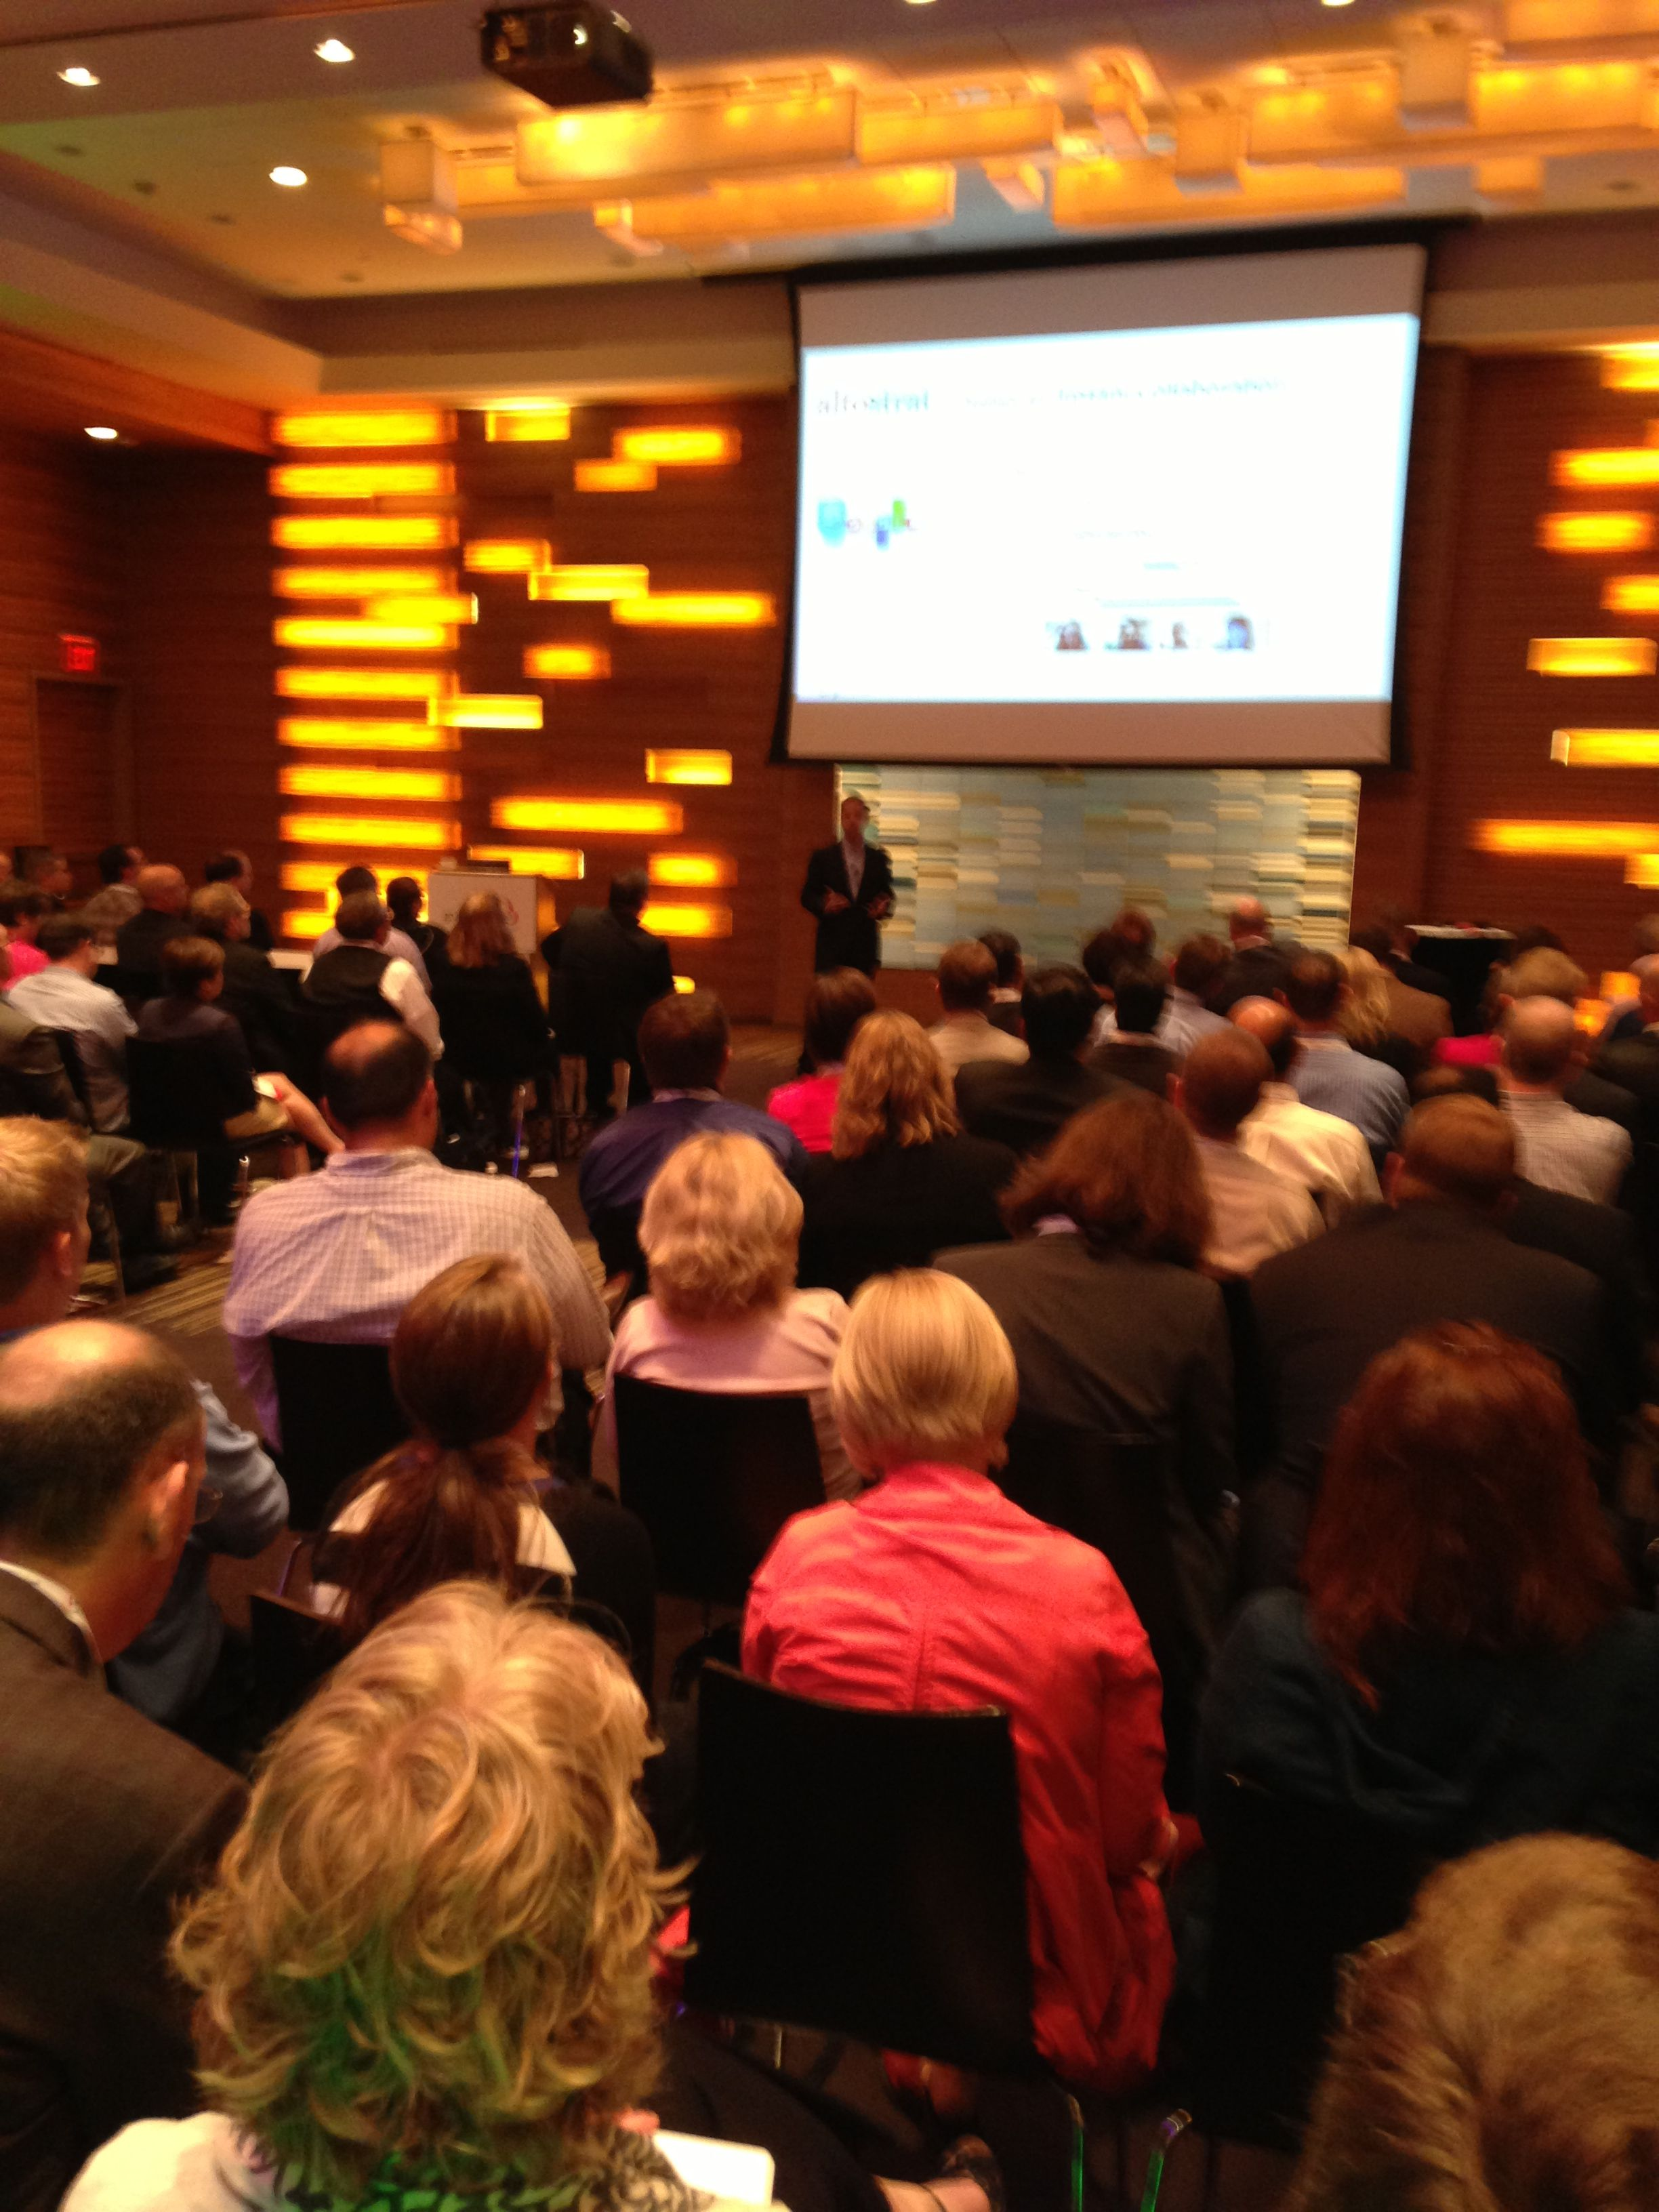 At the going google roadshow event at the minneapolis